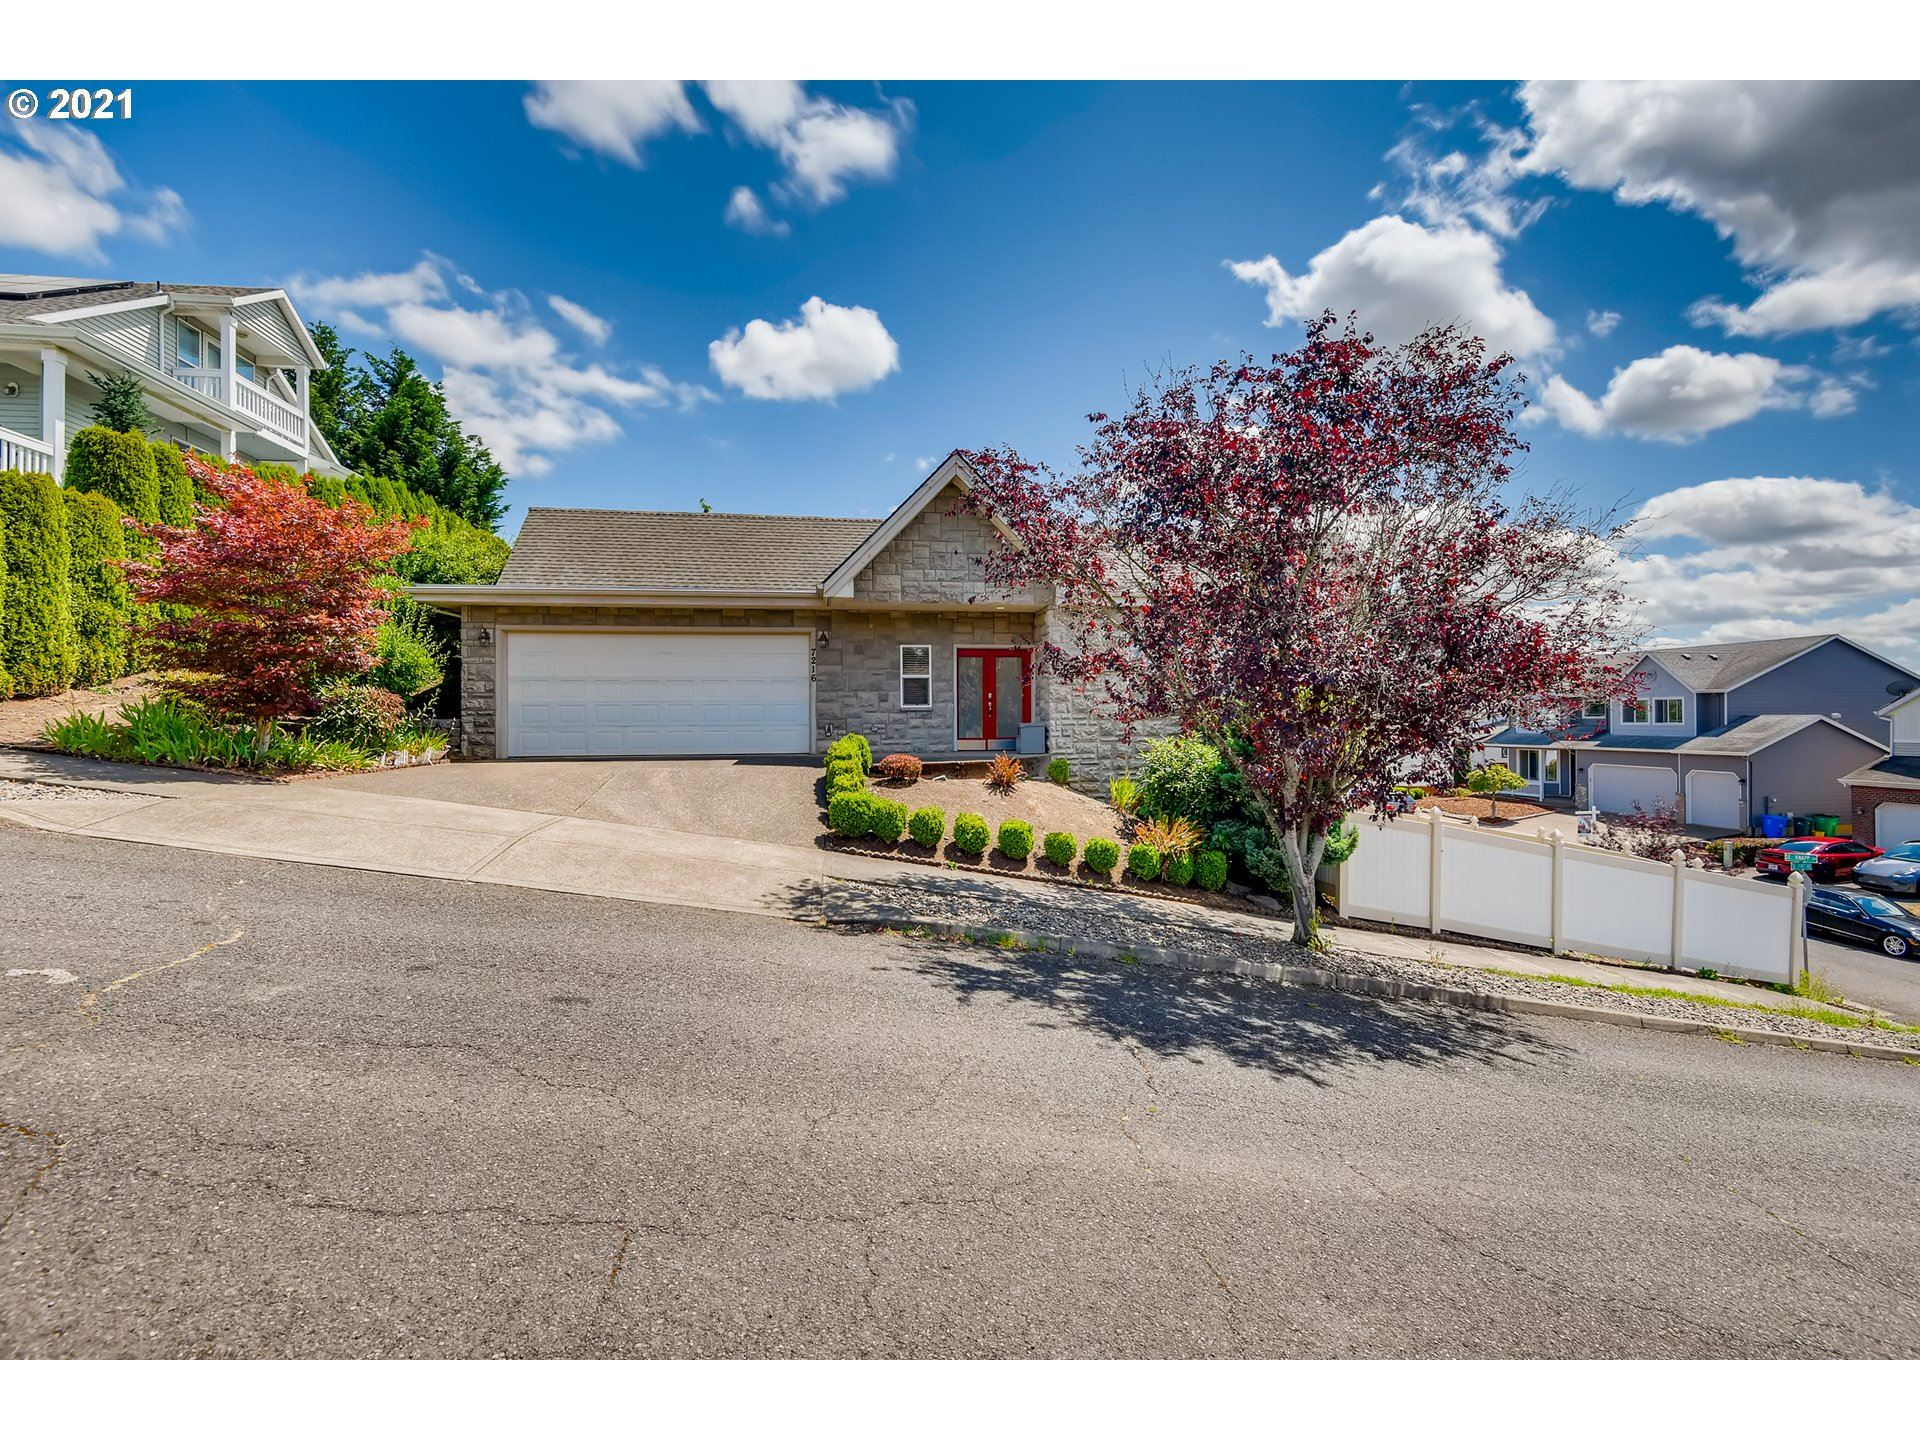 7216 SE 154TH AVE, Portland, OR 97236 - MLS#: 21636315